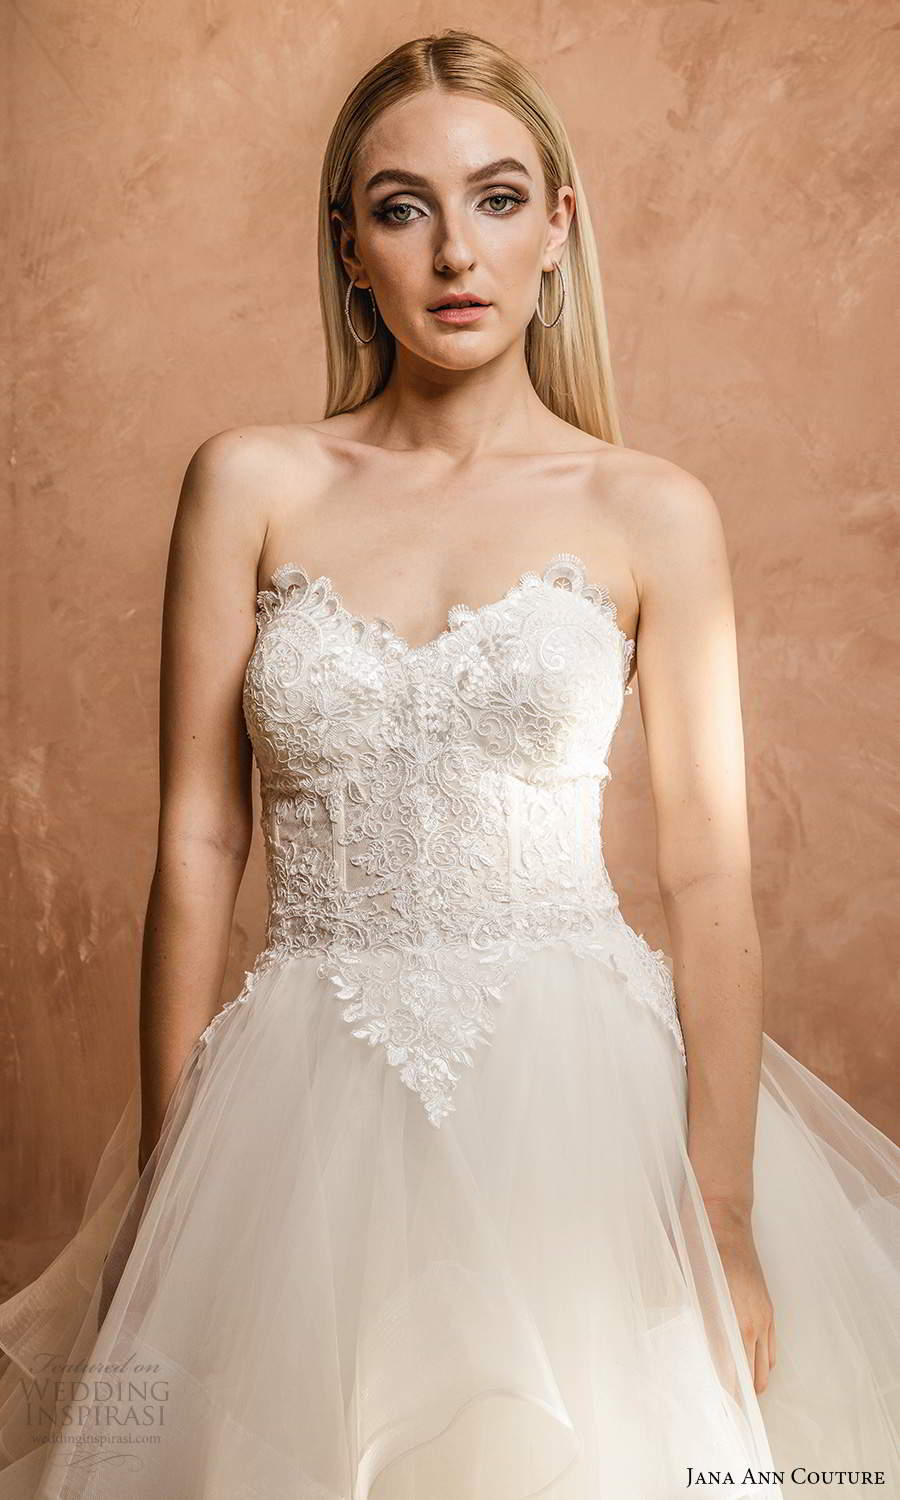 jana ann couture 2021 bridal strapless sweetheart neckline embellished bodice a line ball gown wedding dress chapel train (17) mv